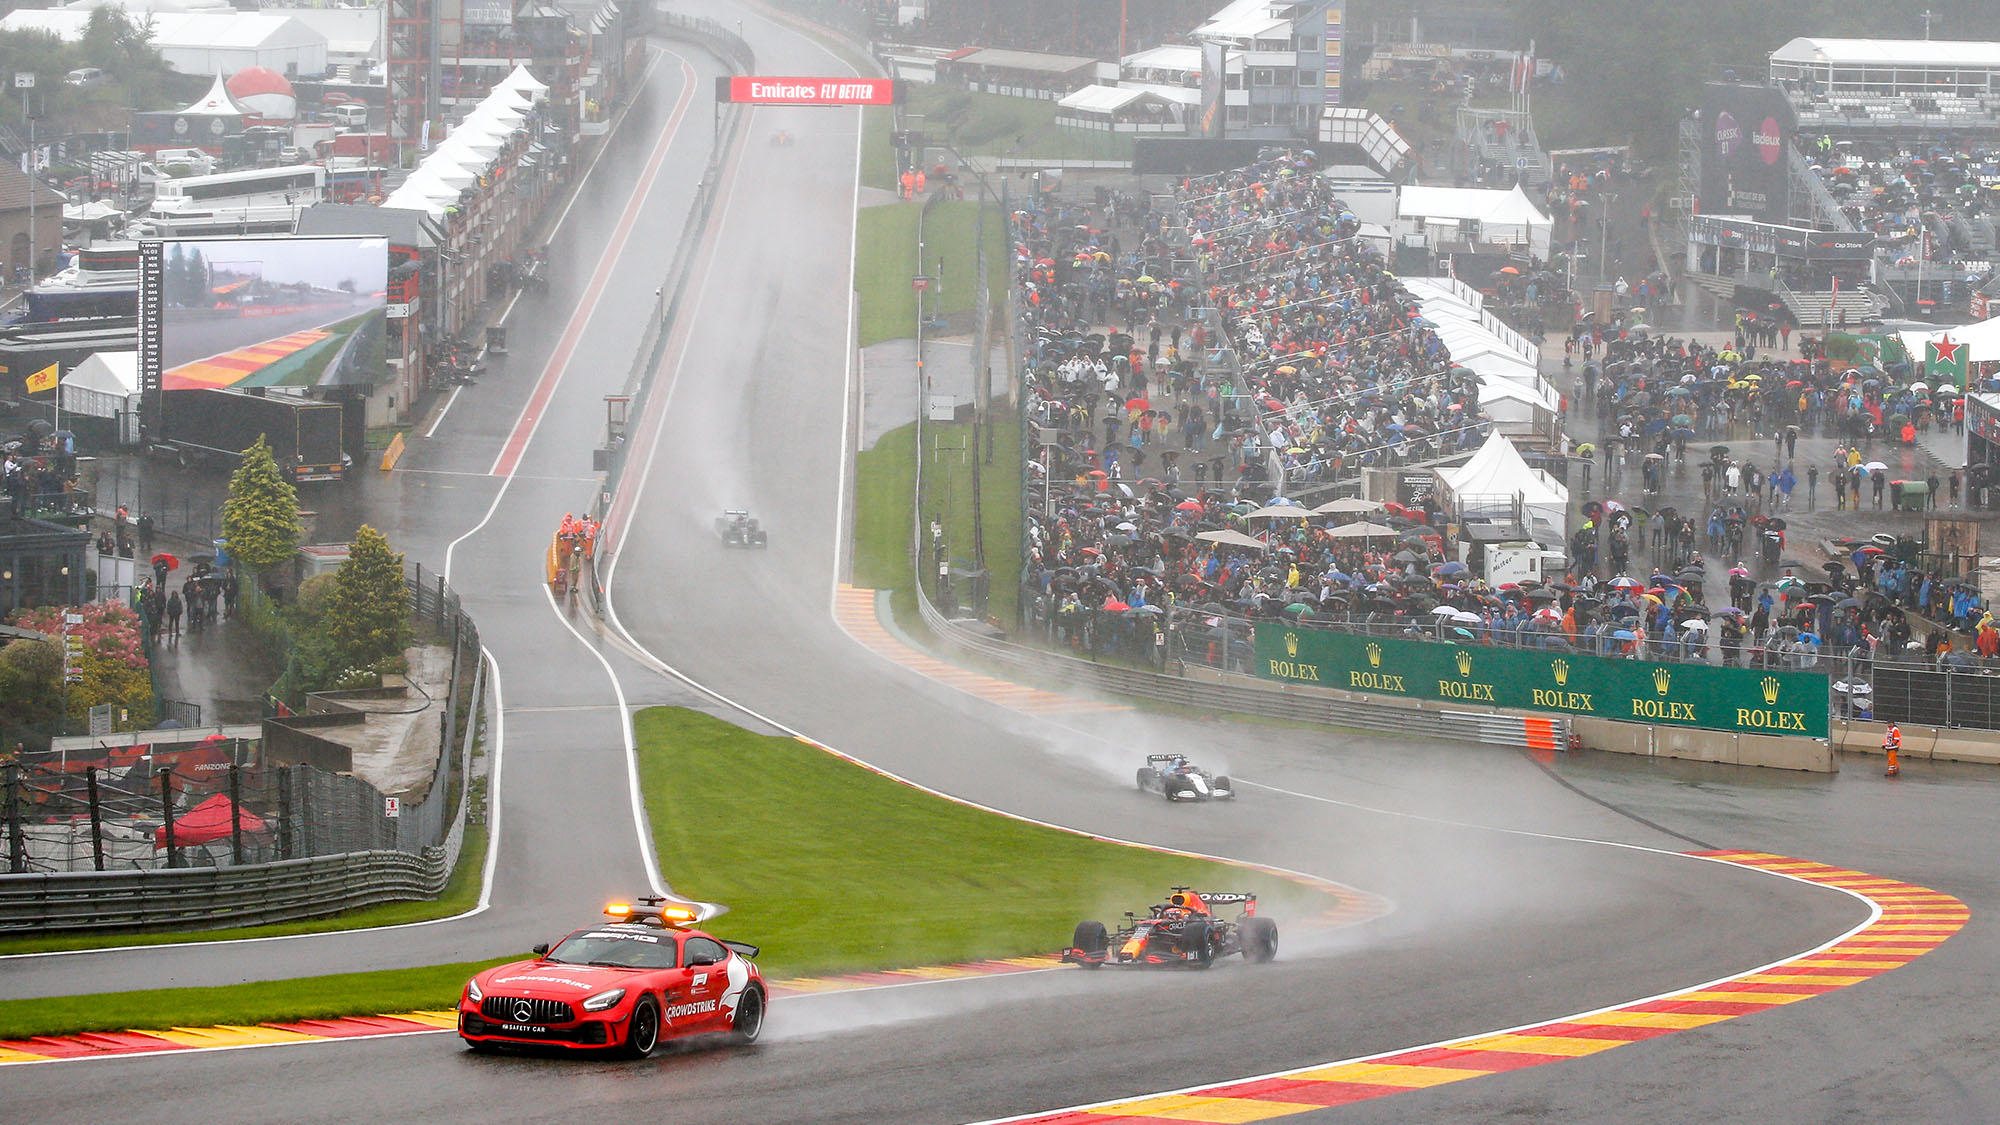 Safety car goes through Eau Rouge at the 2021 Belgian Grand Prix